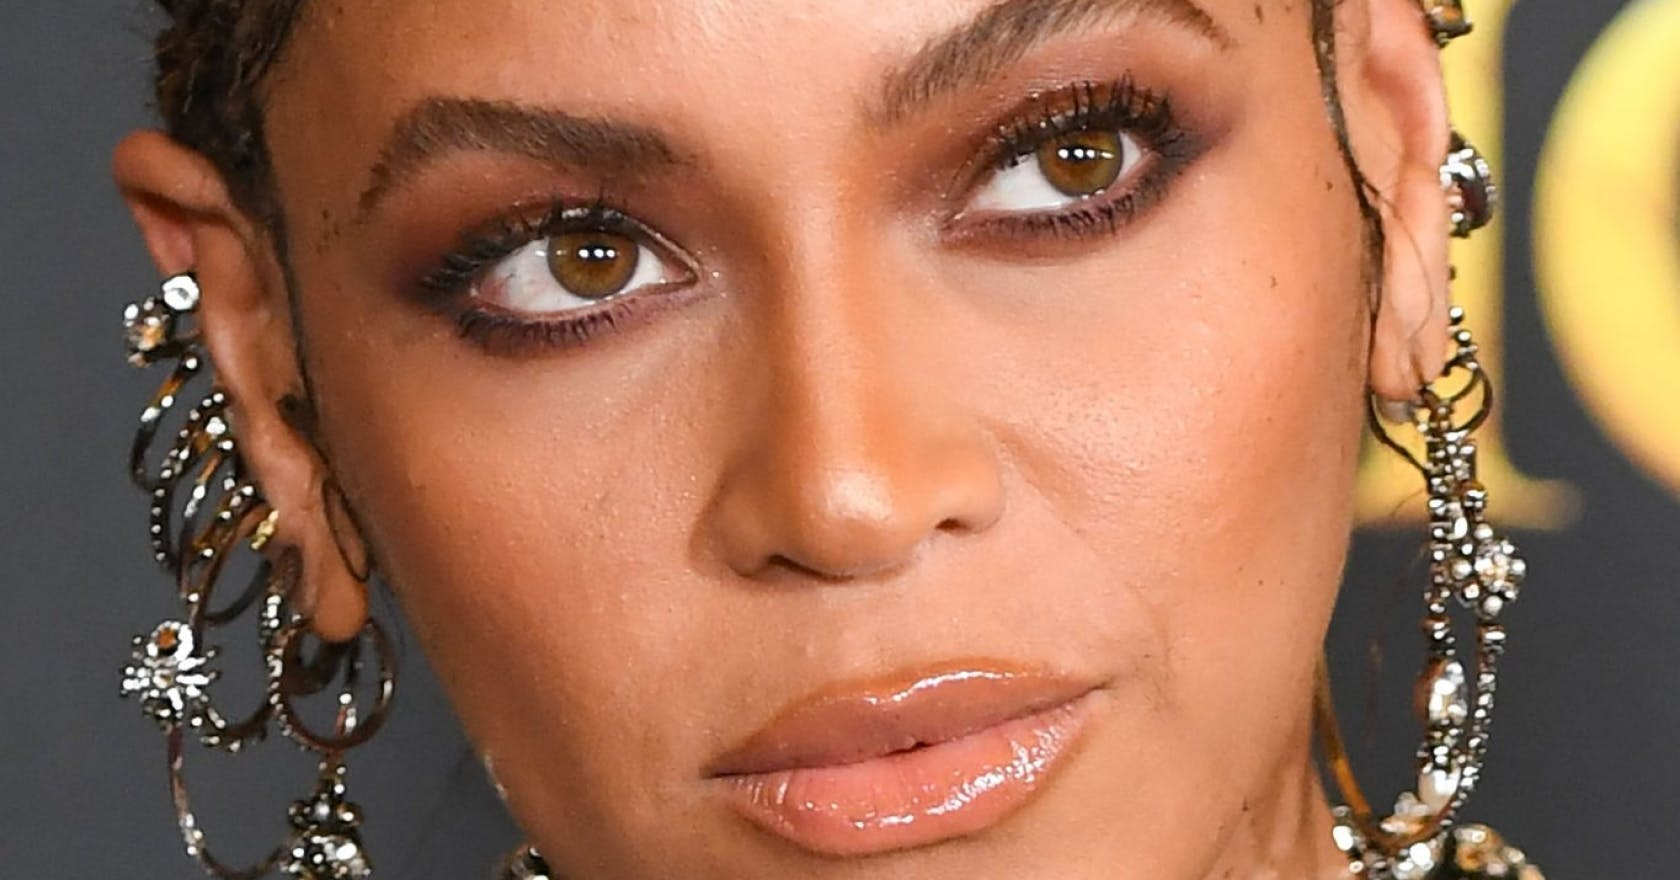 Beyonce calls for change in a powerful video message – this is how you can help